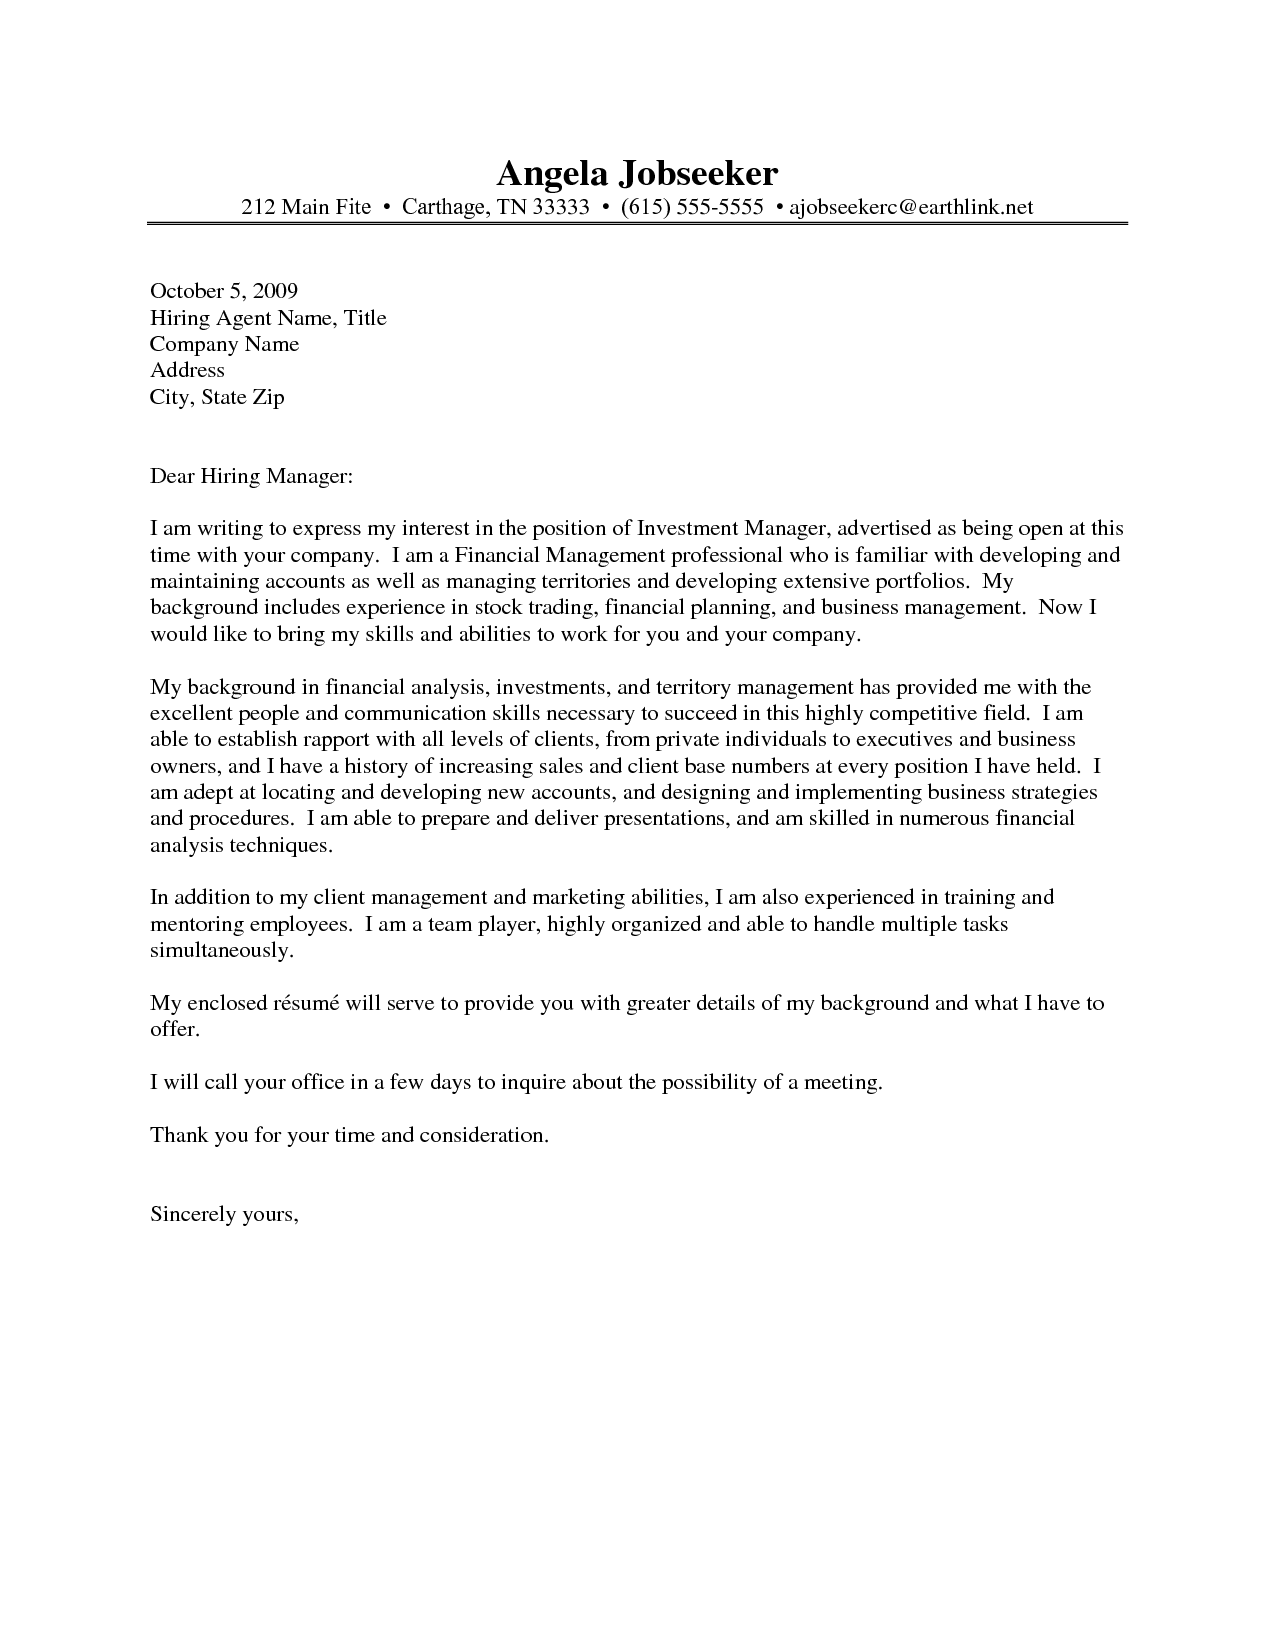 Denver Flight Attendant Cover Letter Advice On Purchasing Non Plagiarizes Research Paper Online Room